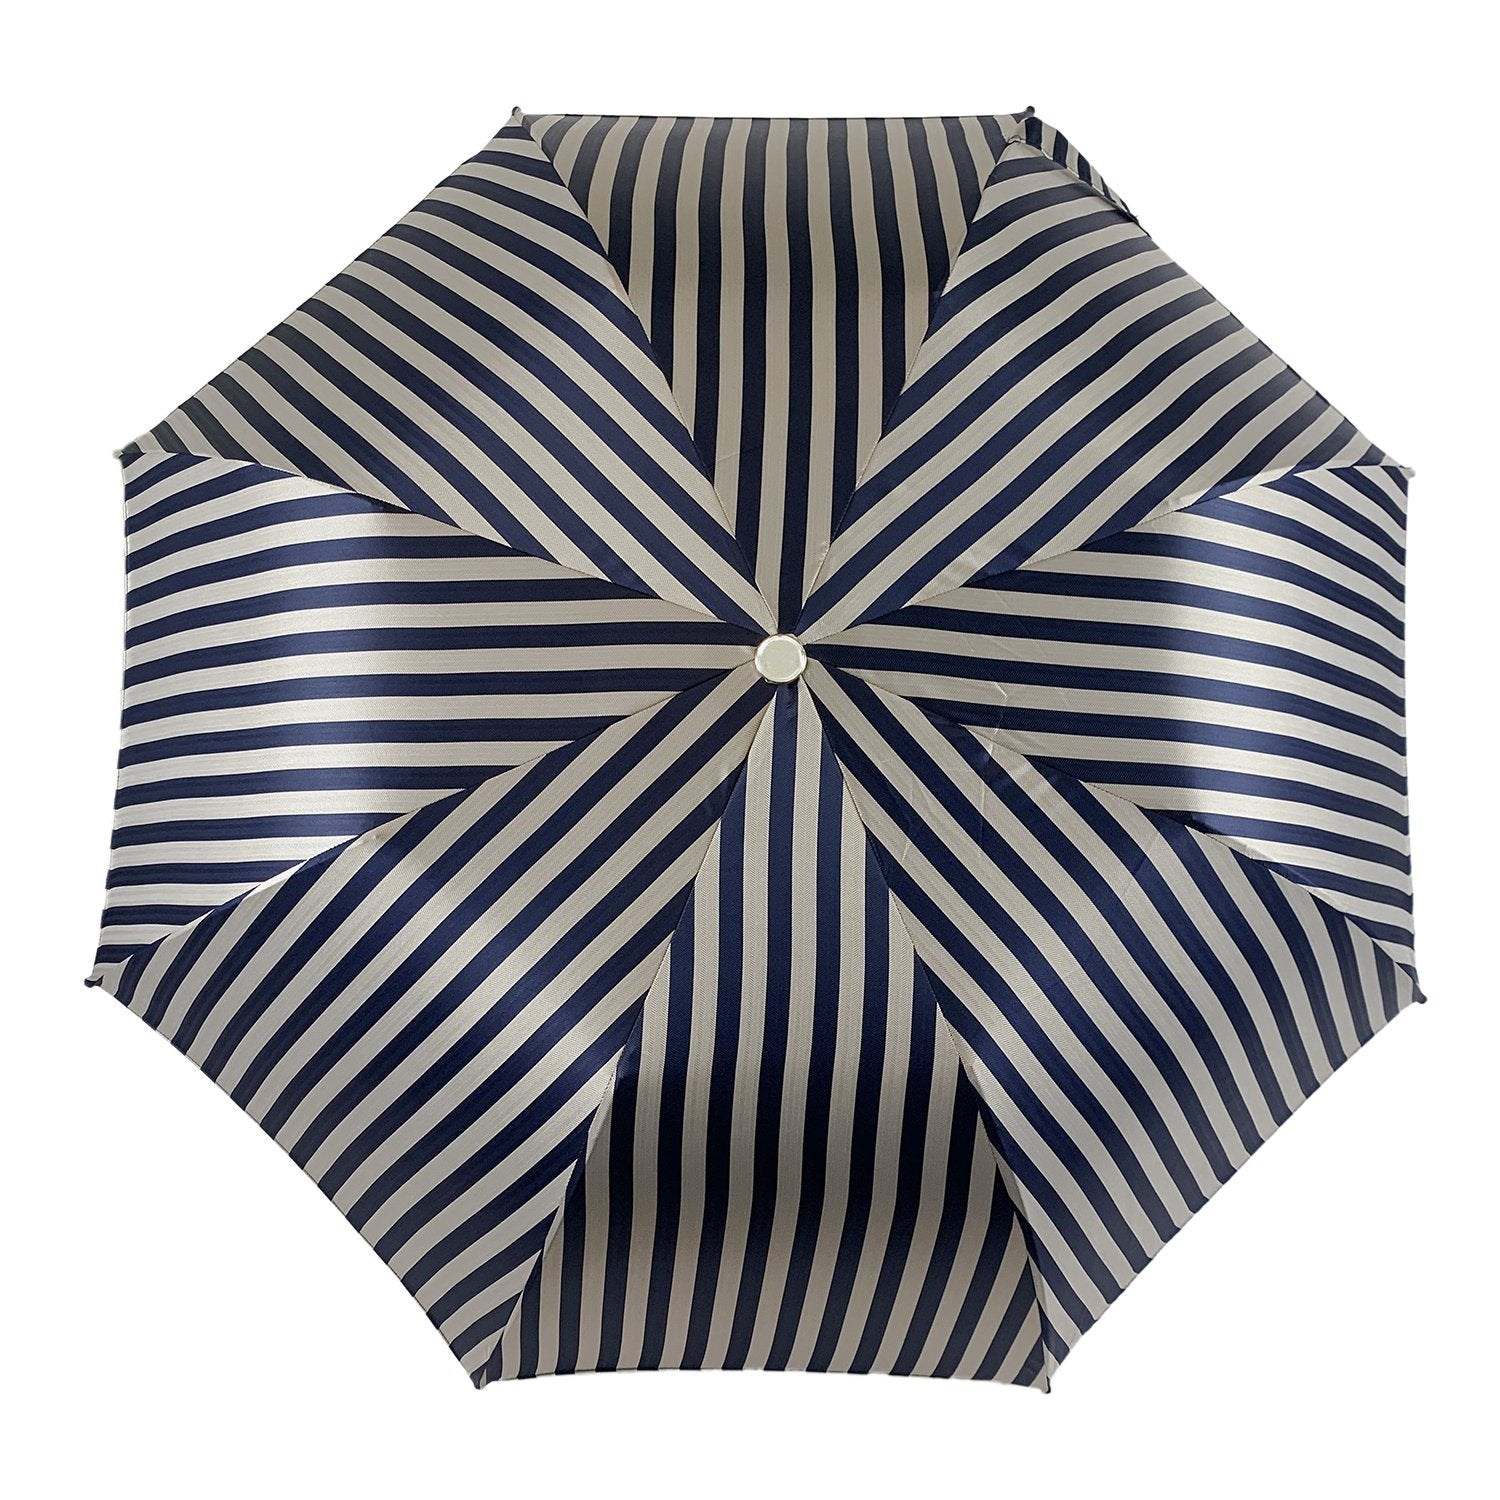 Striped Grey and Blue Men's Folding Collection - IL MARCHESATO LUXURY UMBRELLAS, CANES AND SHOEHORNS